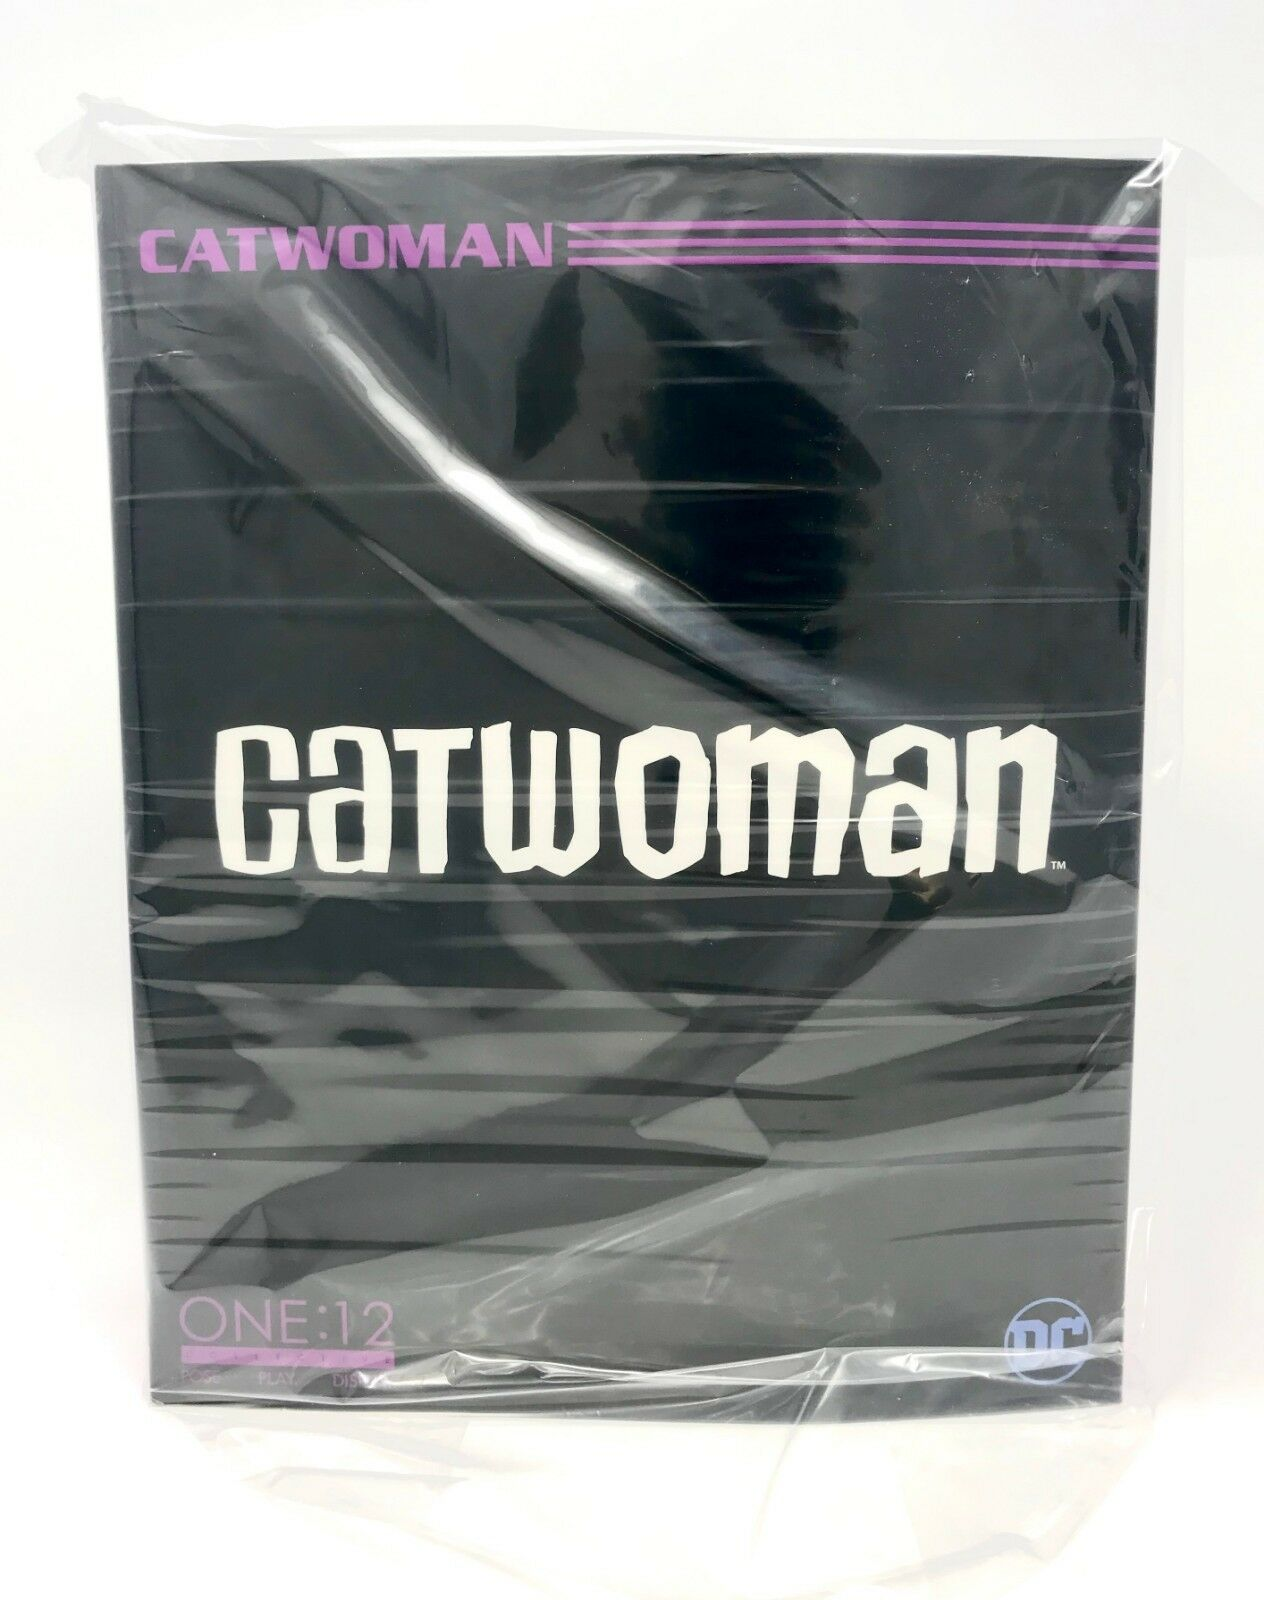 Mezco Mezco Mezco Toyz One 12 Collective DC Comics Catwoman 1 12 Scale 6  Action Figure 384784